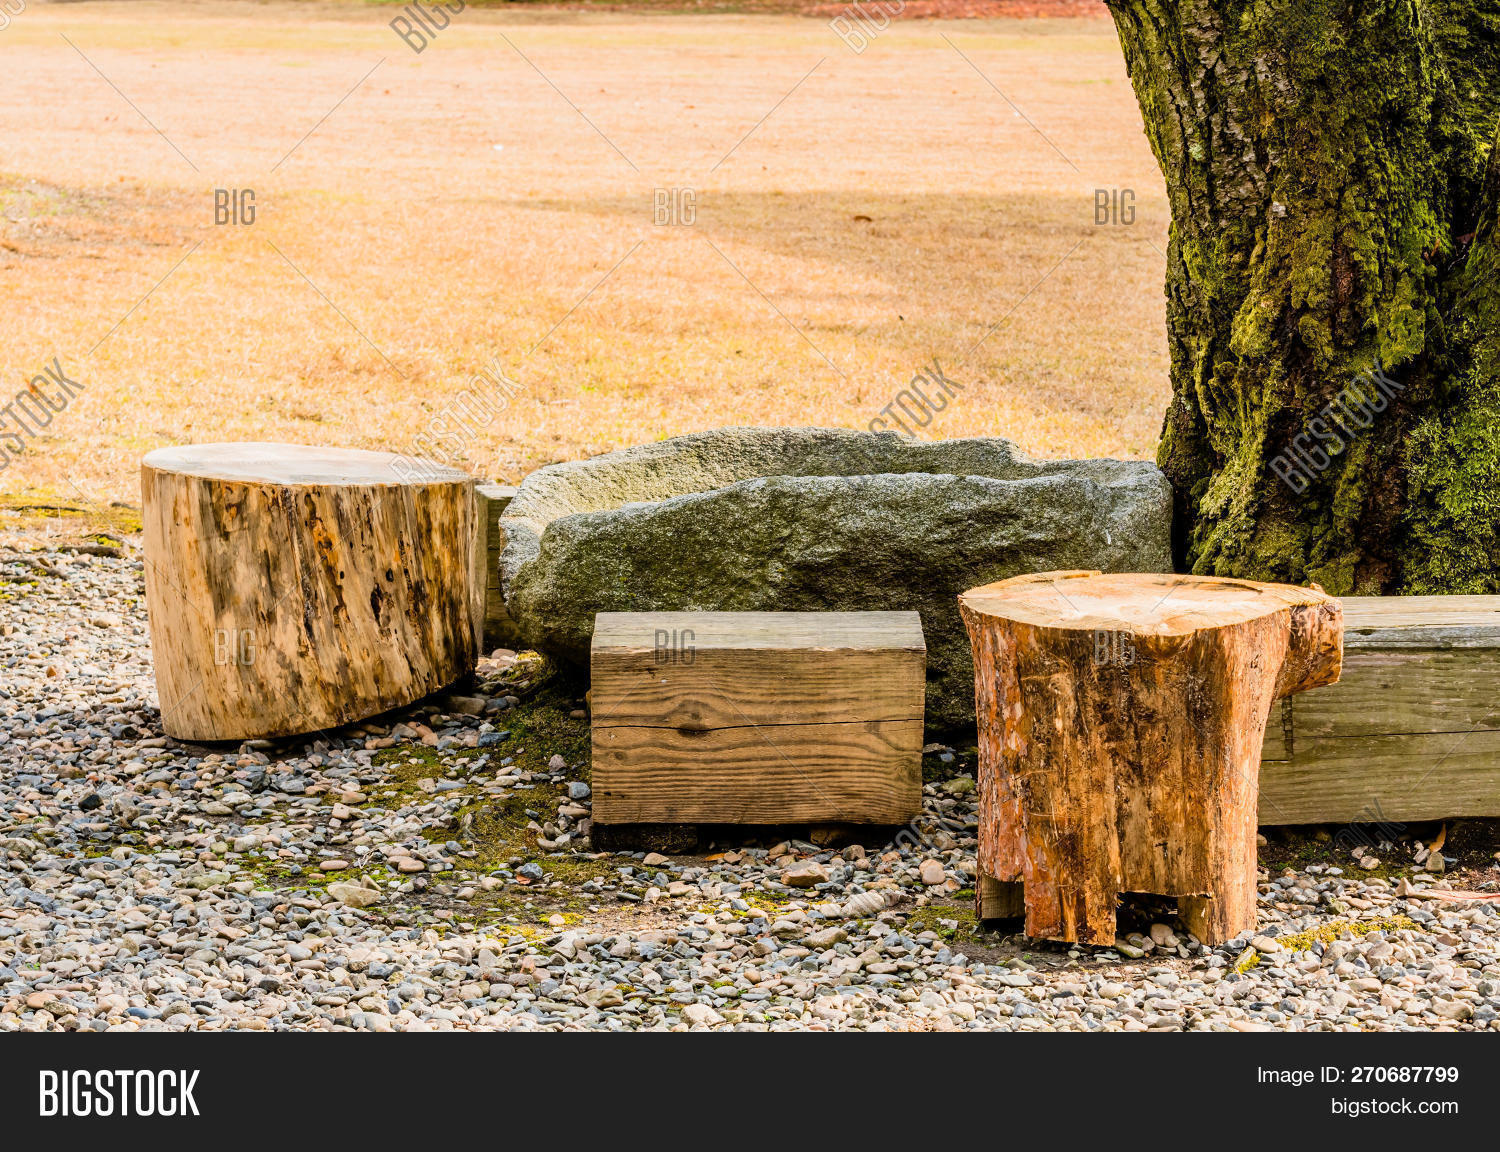 Awesome Man Made Concrete Image Photo Free Trial Bigstock Ocoug Best Dining Table And Chair Ideas Images Ocougorg